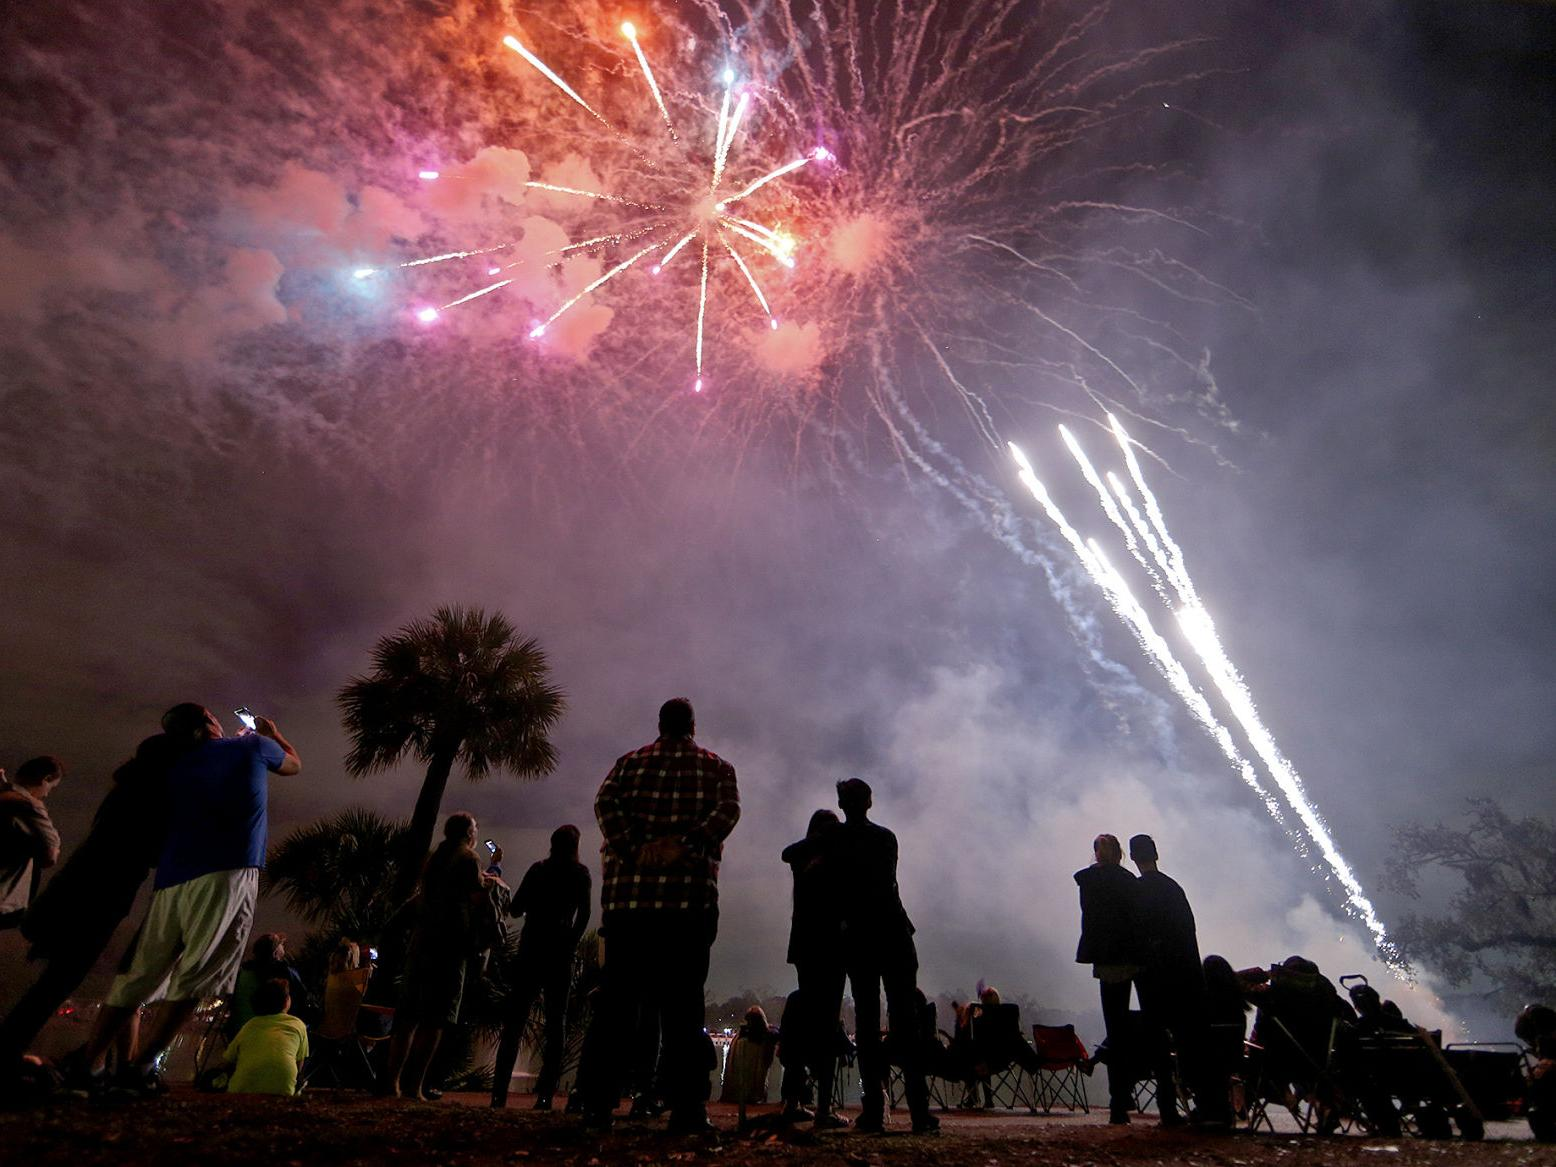 ring in the new year at glitzy parties dinners then watch fireworks over the mississippi river louisiana festivals nola com ring in the new year at glitzy parties